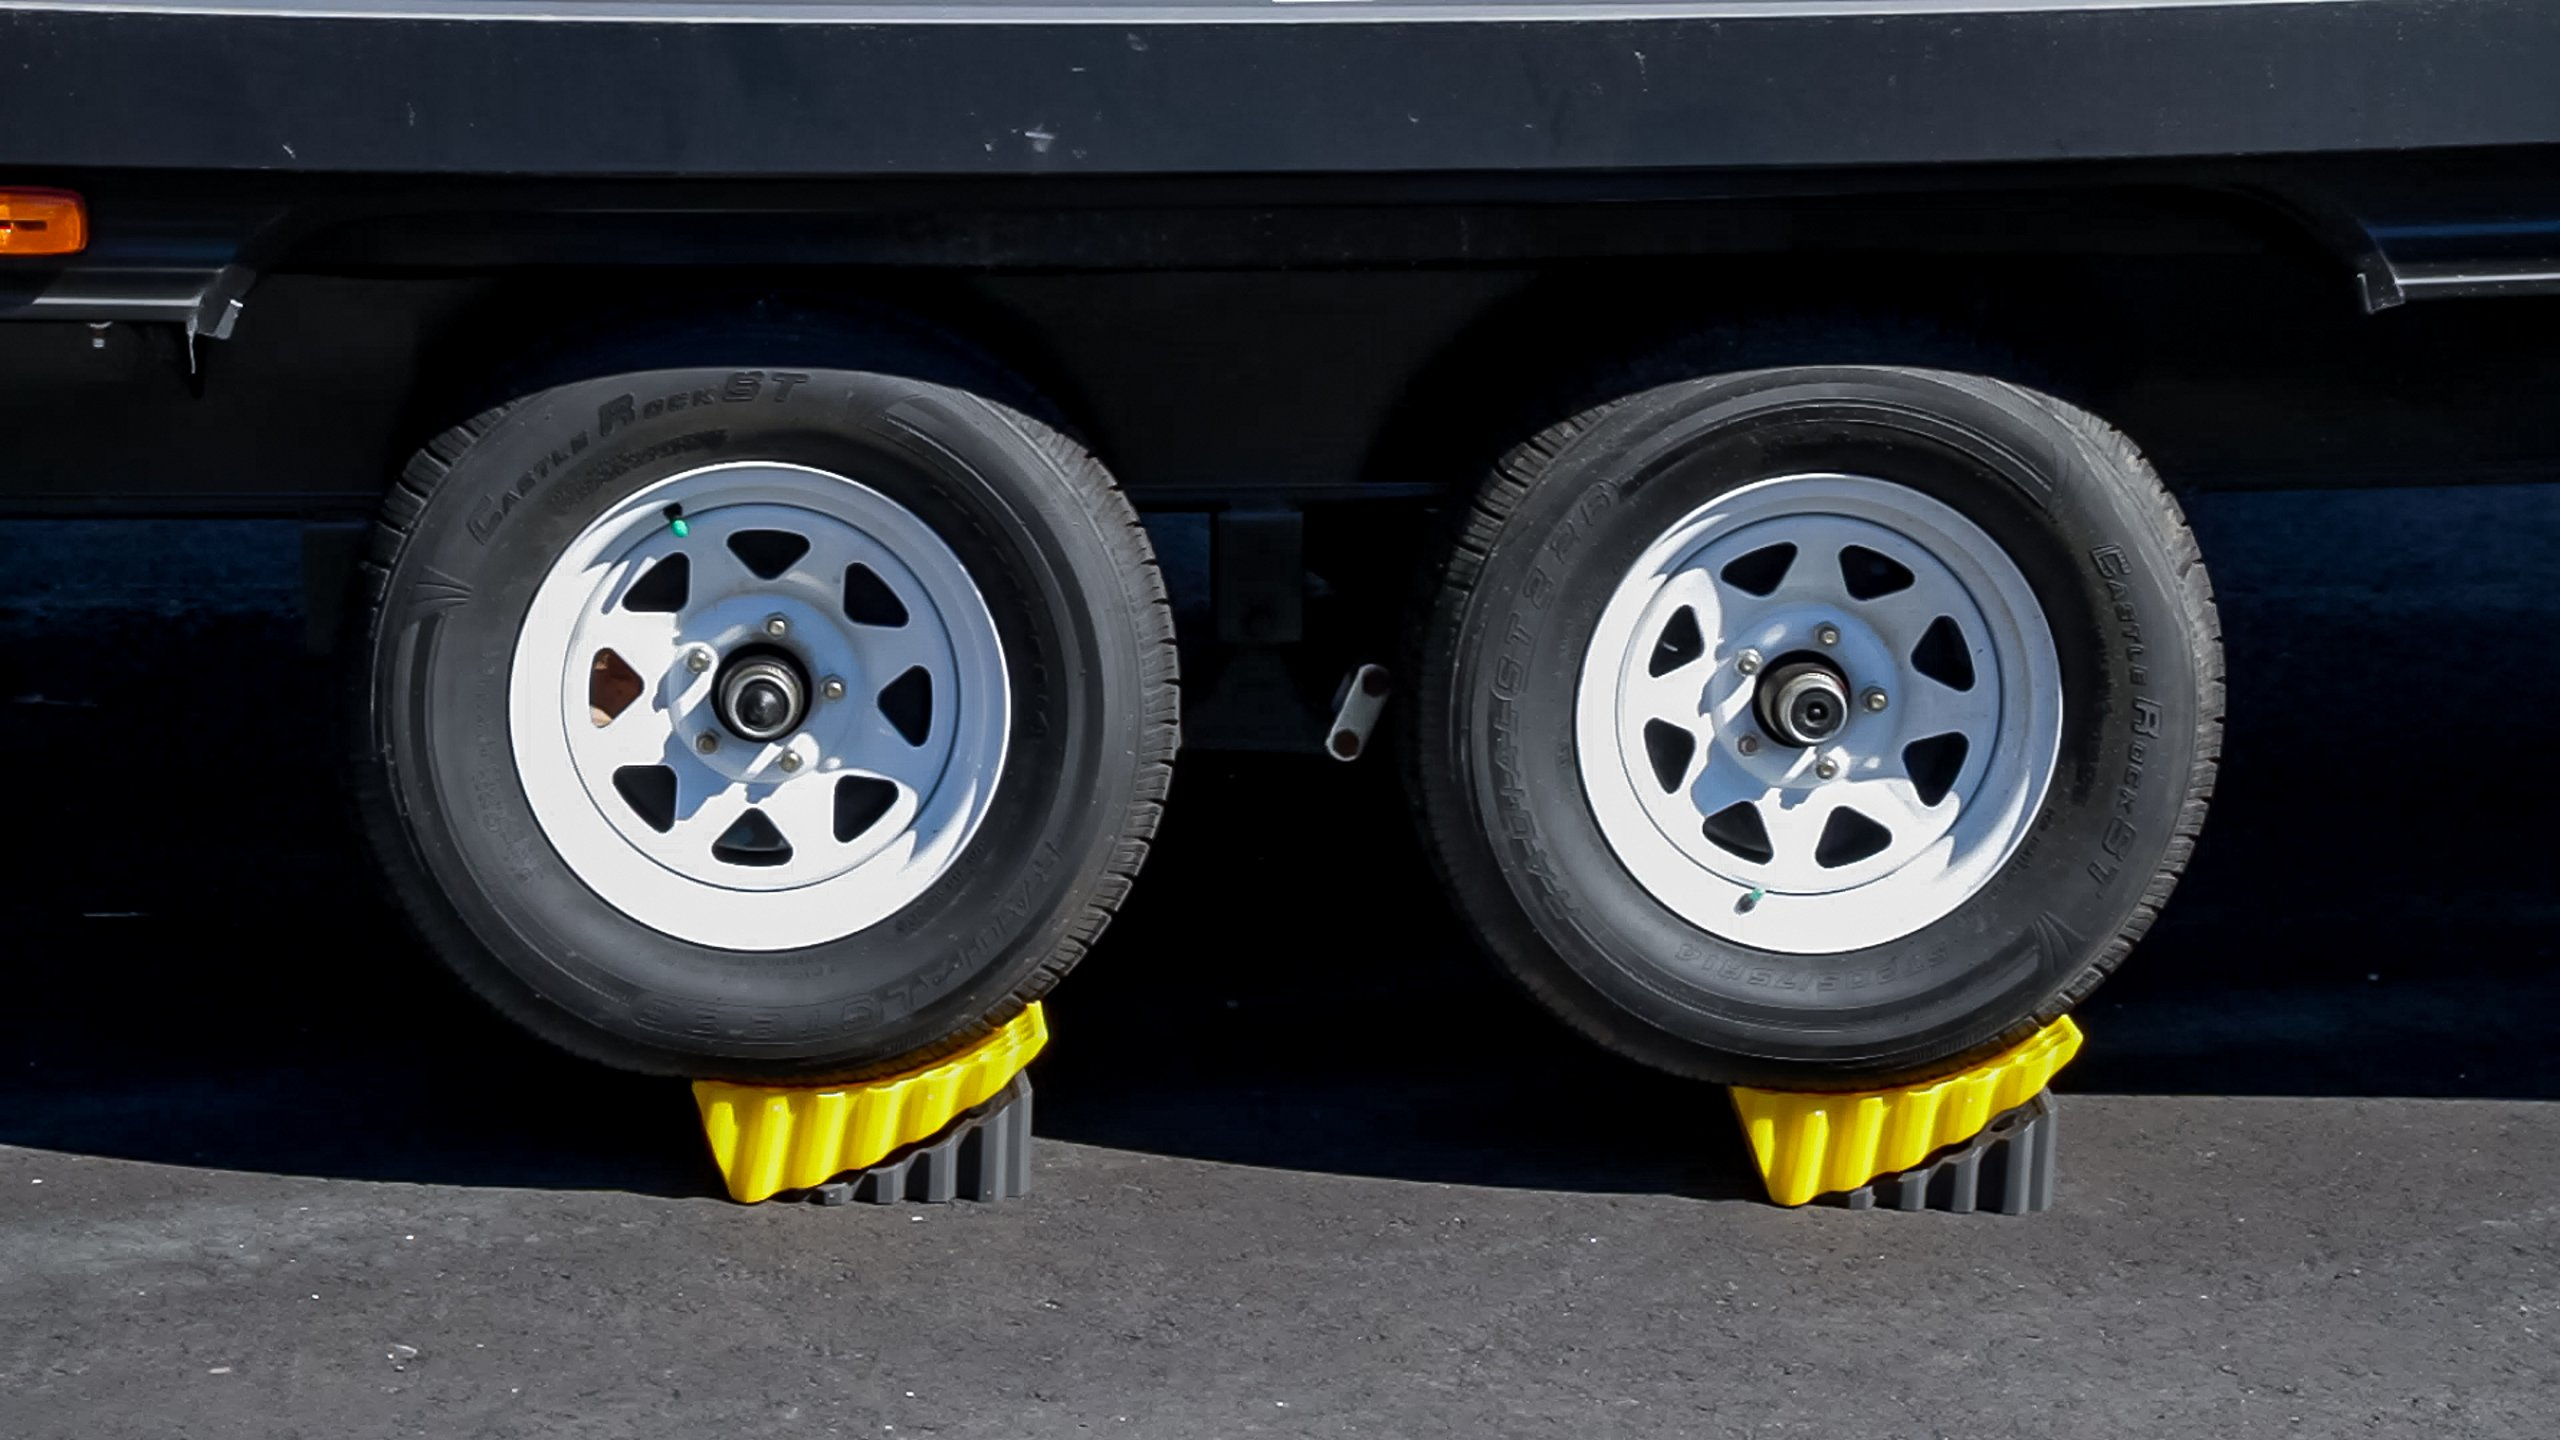 Camco RV Curved Leveler with Chock - 2 Pack - Easy Drive-on Leveler Adds Up to 4'' in Height (44425) by Camco (Image #6)